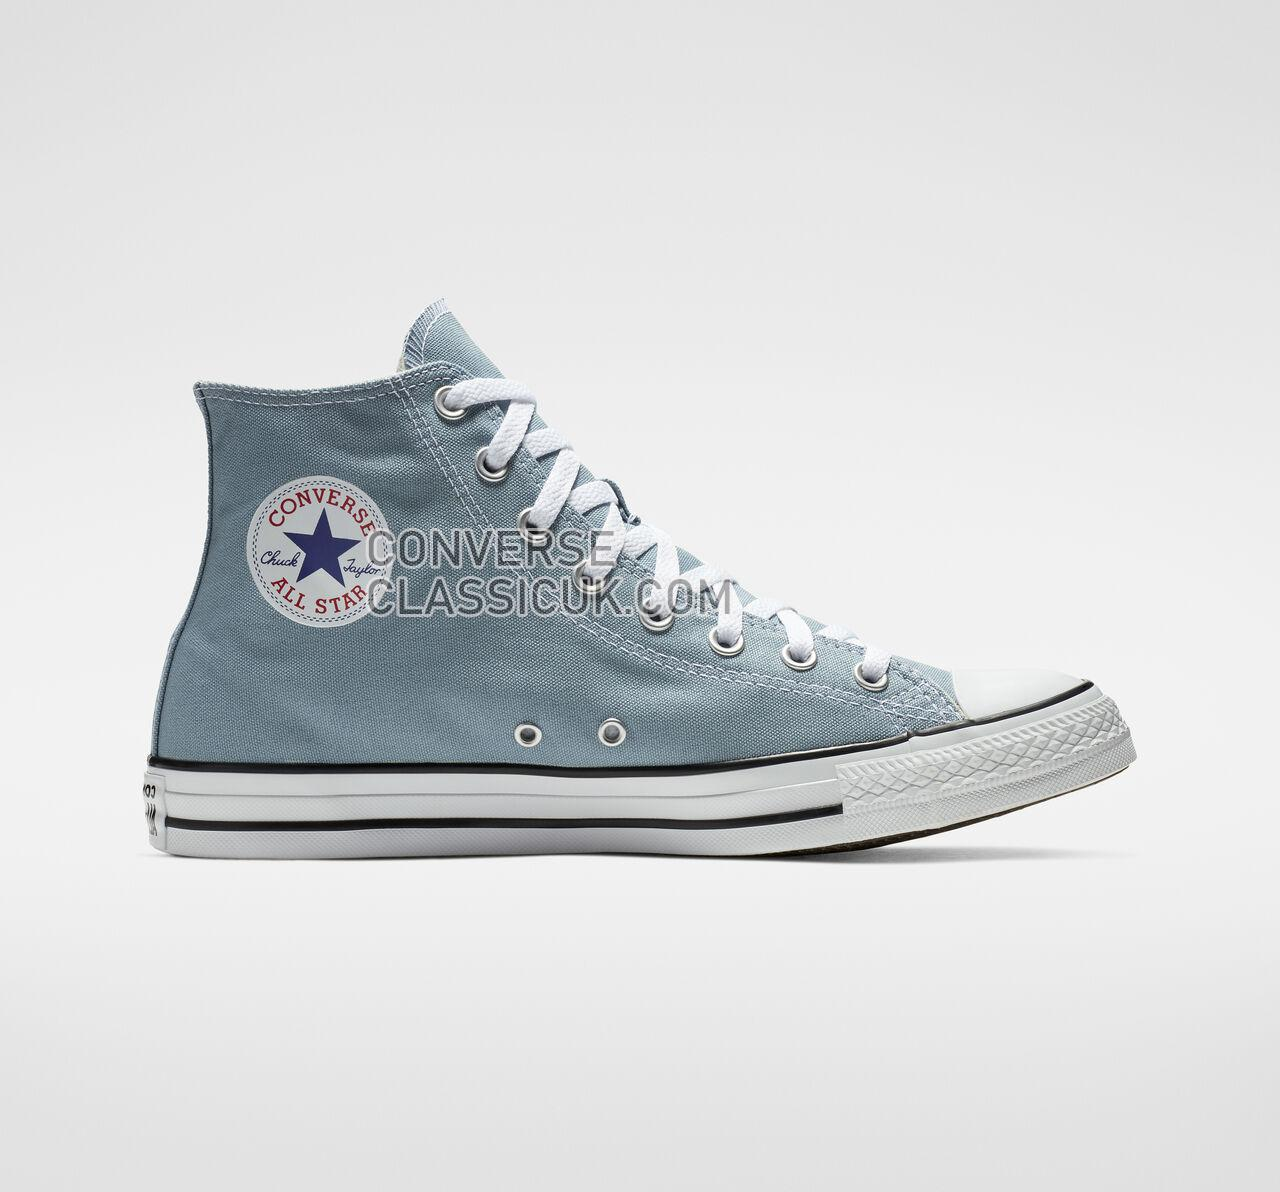 Converse Chuck Taylor All Star Seasonal Color High Top Mens Womens Unisex 162114F Washed Denim Shoes